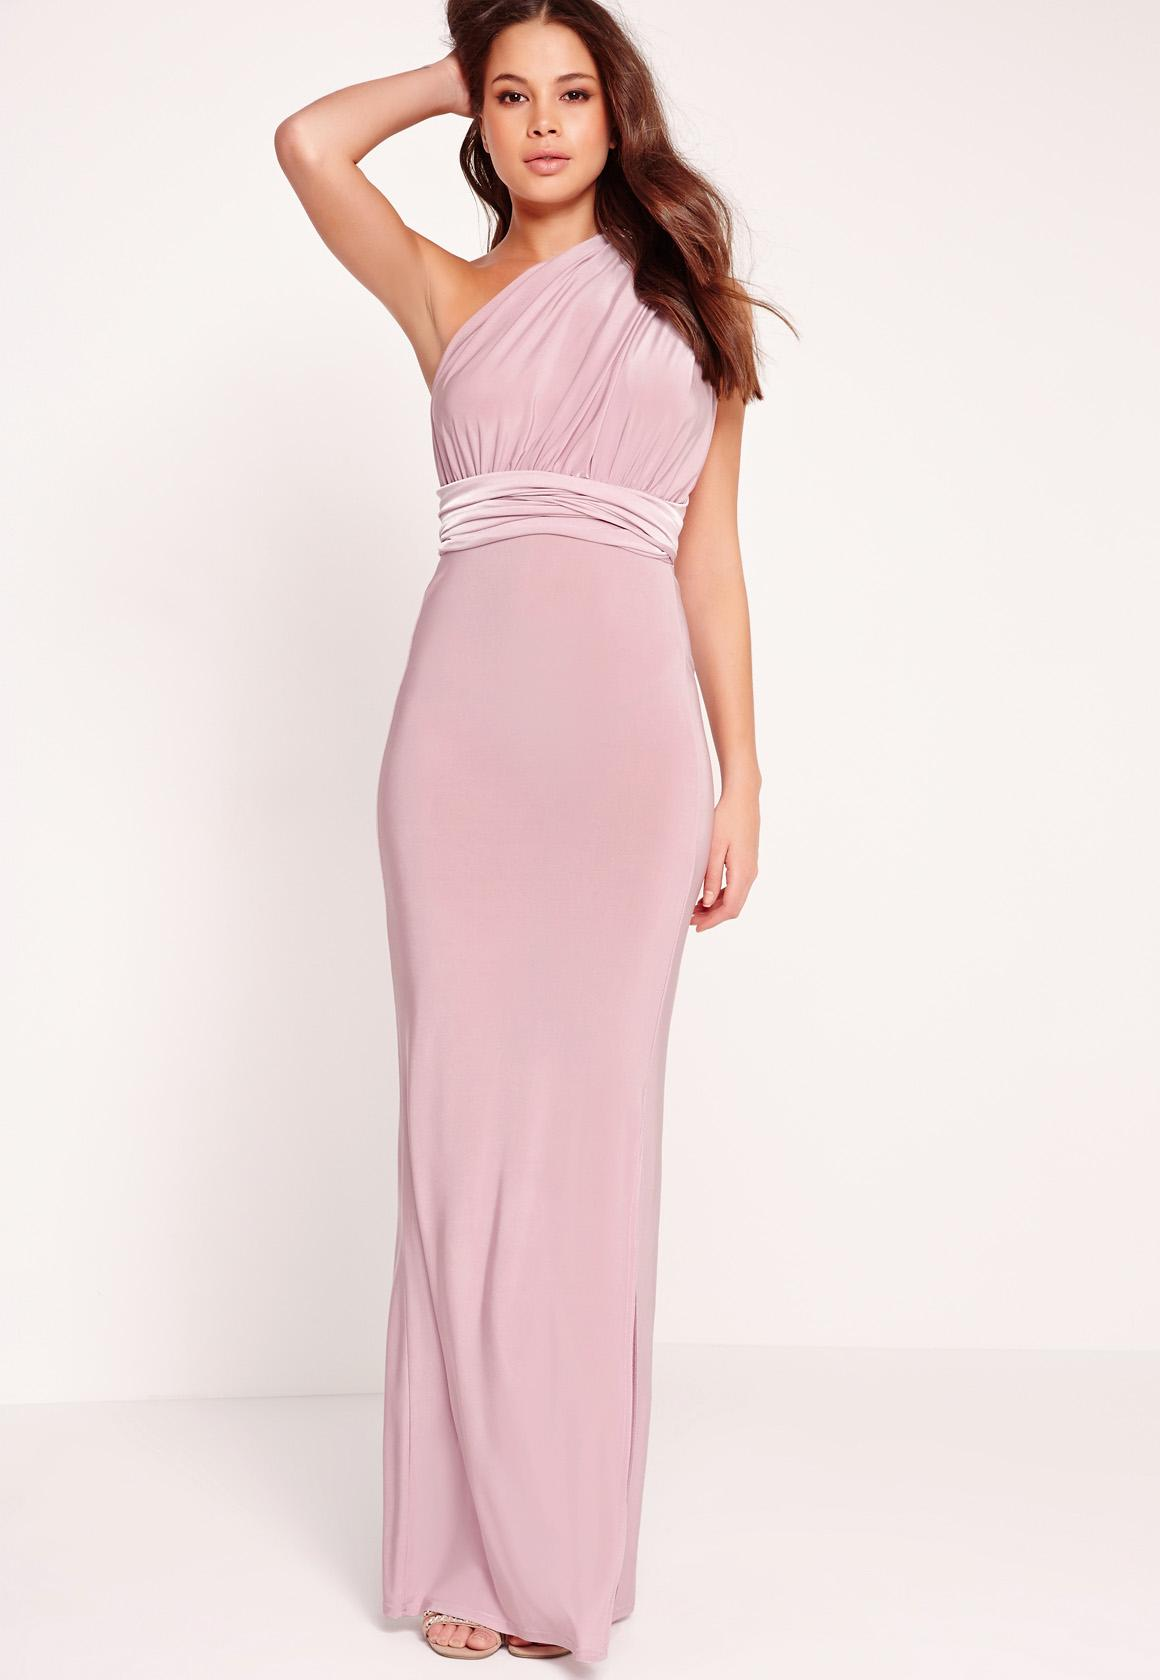 Slinky Multiway Maxi Dress Lilac | Missguided